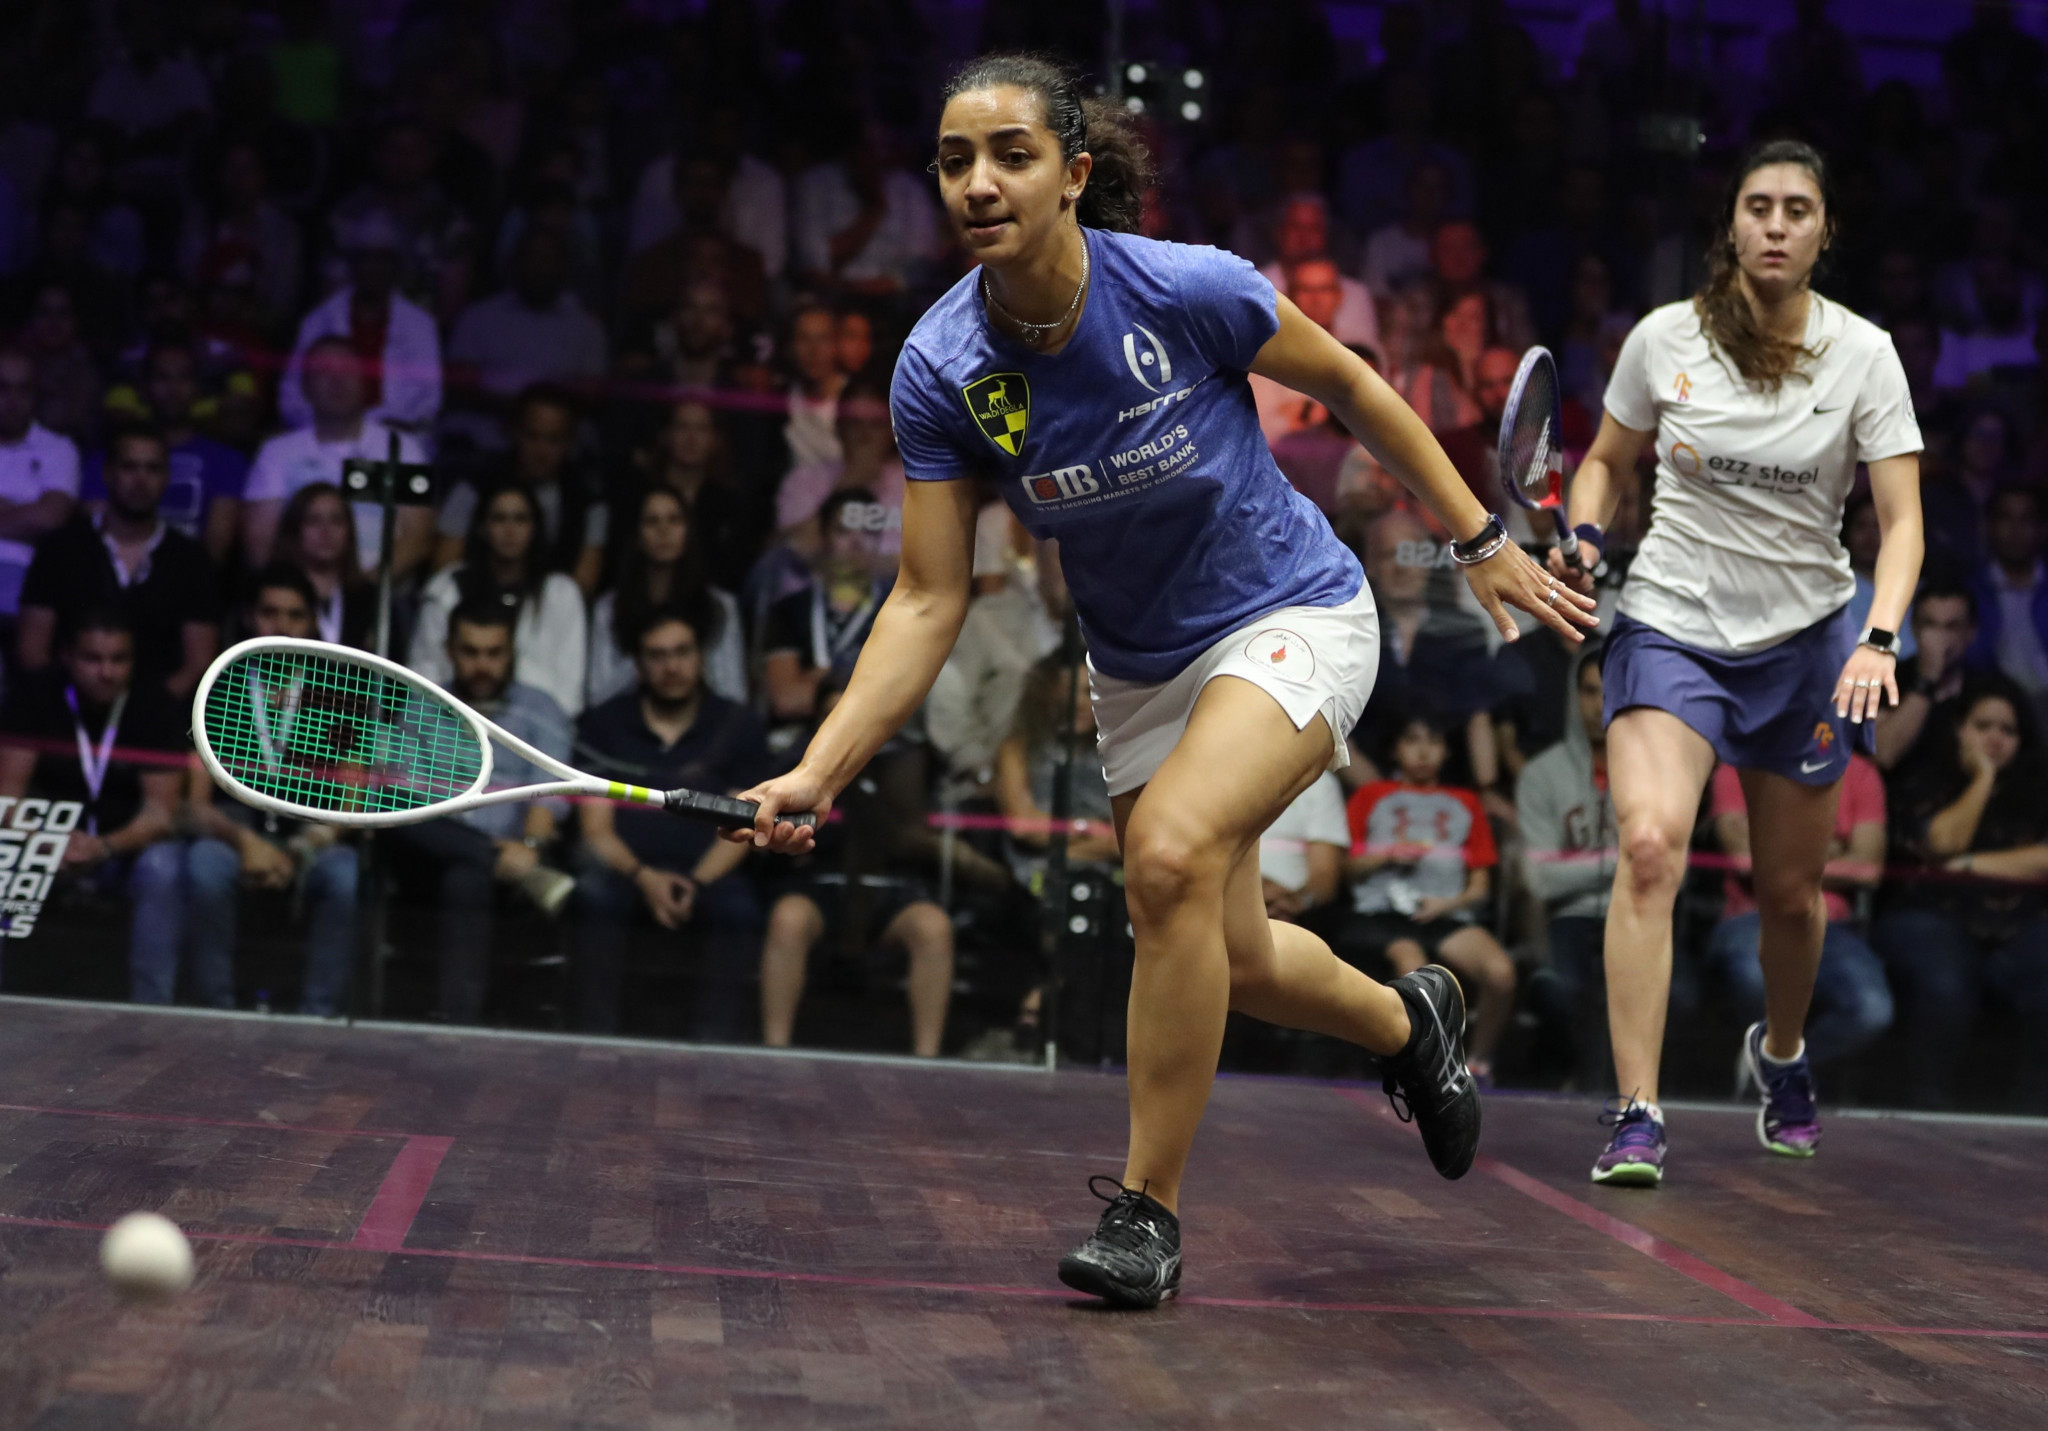 World's best squash players gather in San Francisco for PSA Oracle Netsuite Open